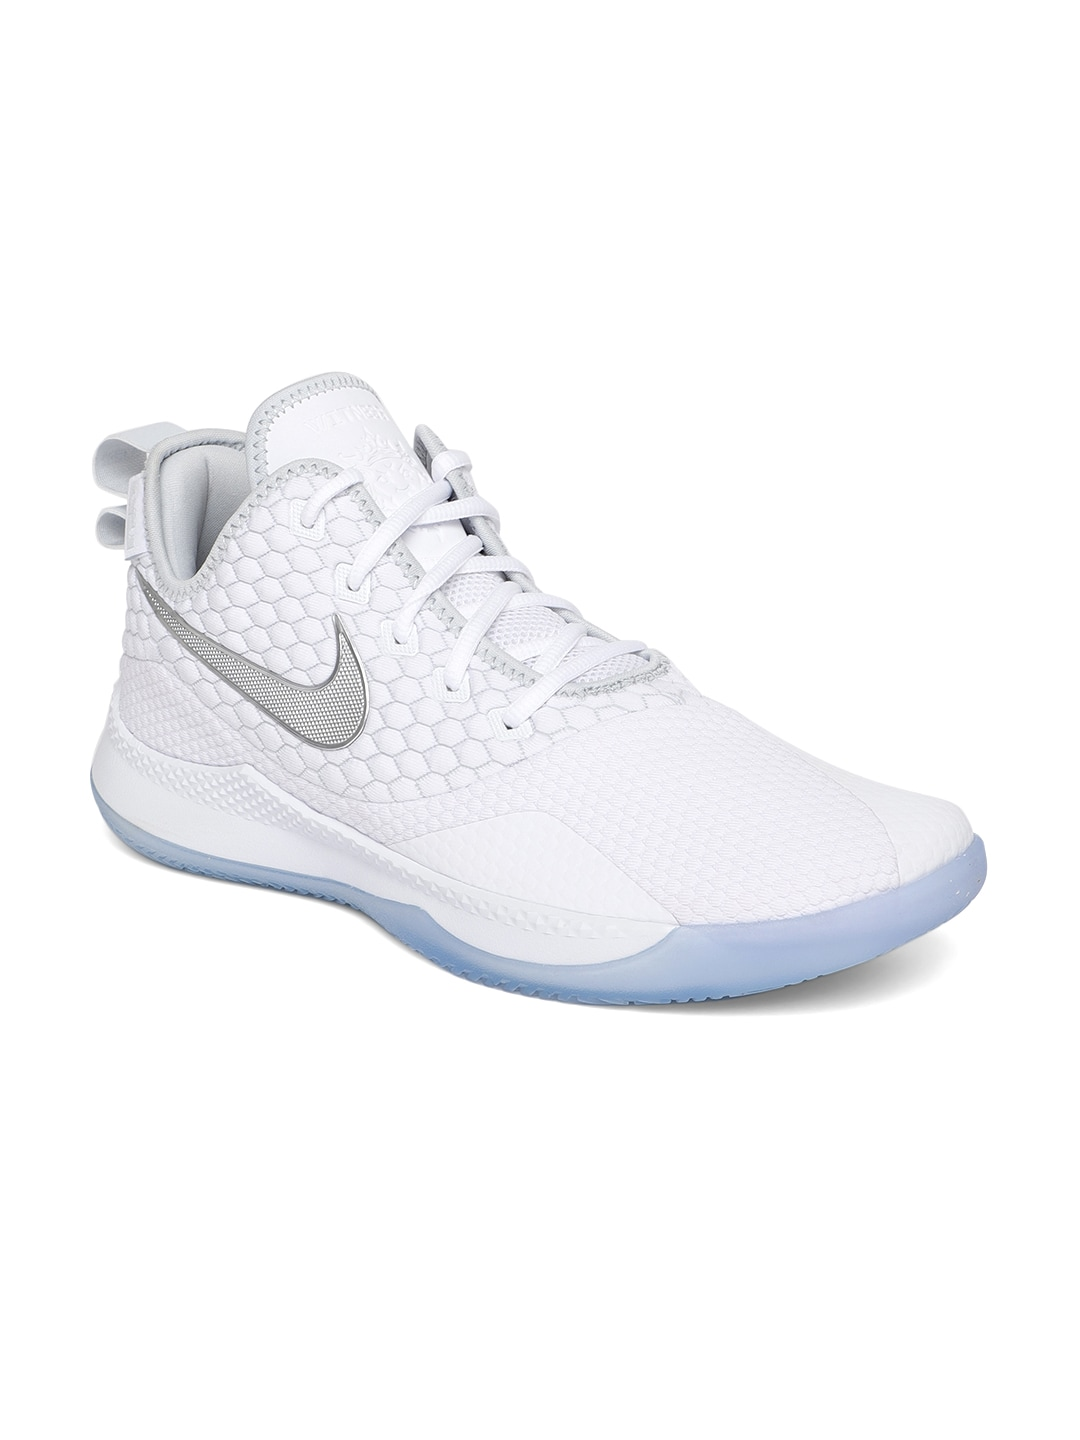 b81d2fd2ed0 Nike Basketball Shoes